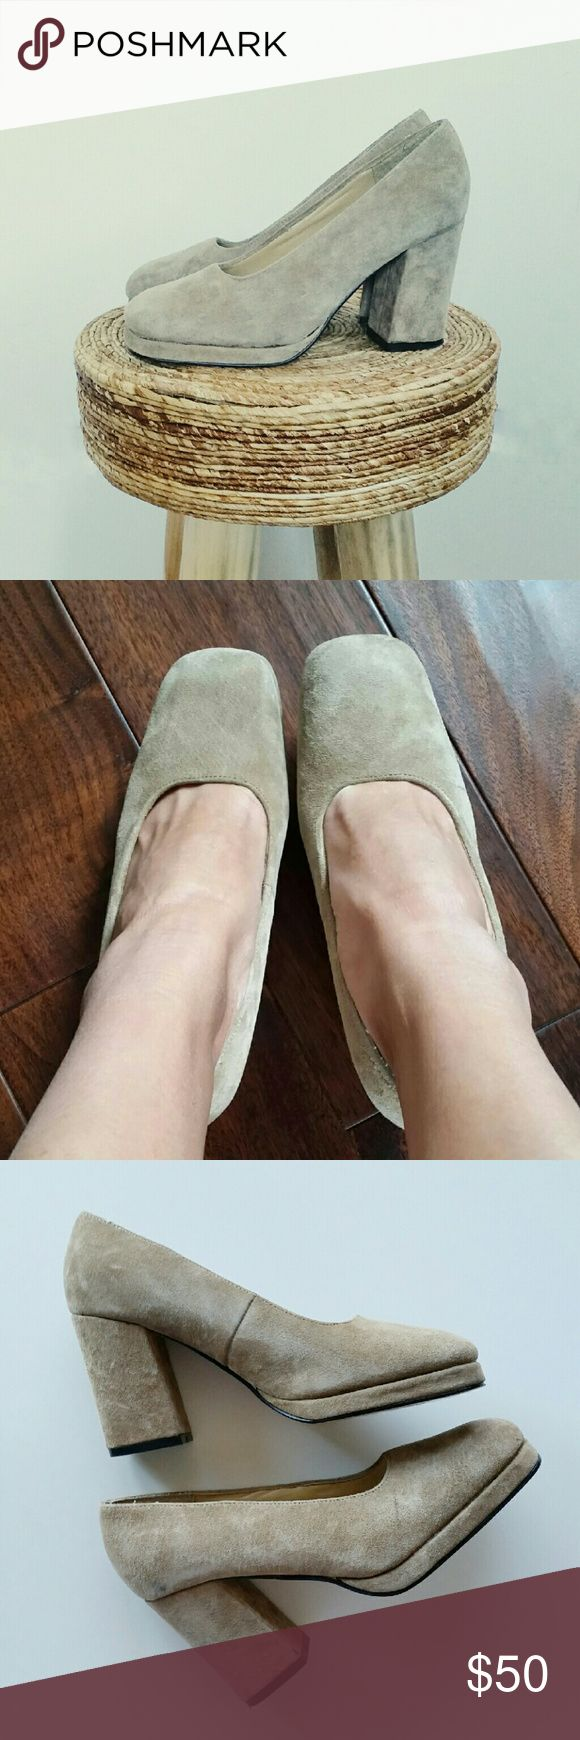 """Colin Stuart Tan Suede Block Heel Pumps Colin Stuart Suede Block Heel Pumps  *Size 7.5 *Tan colored genuine suede *3.25"""" heels *Chunky block heel / stacked heel *In great pre-loved condition with mild normal signs of wear  *No trade Colin Stuart Shoes Heels"""